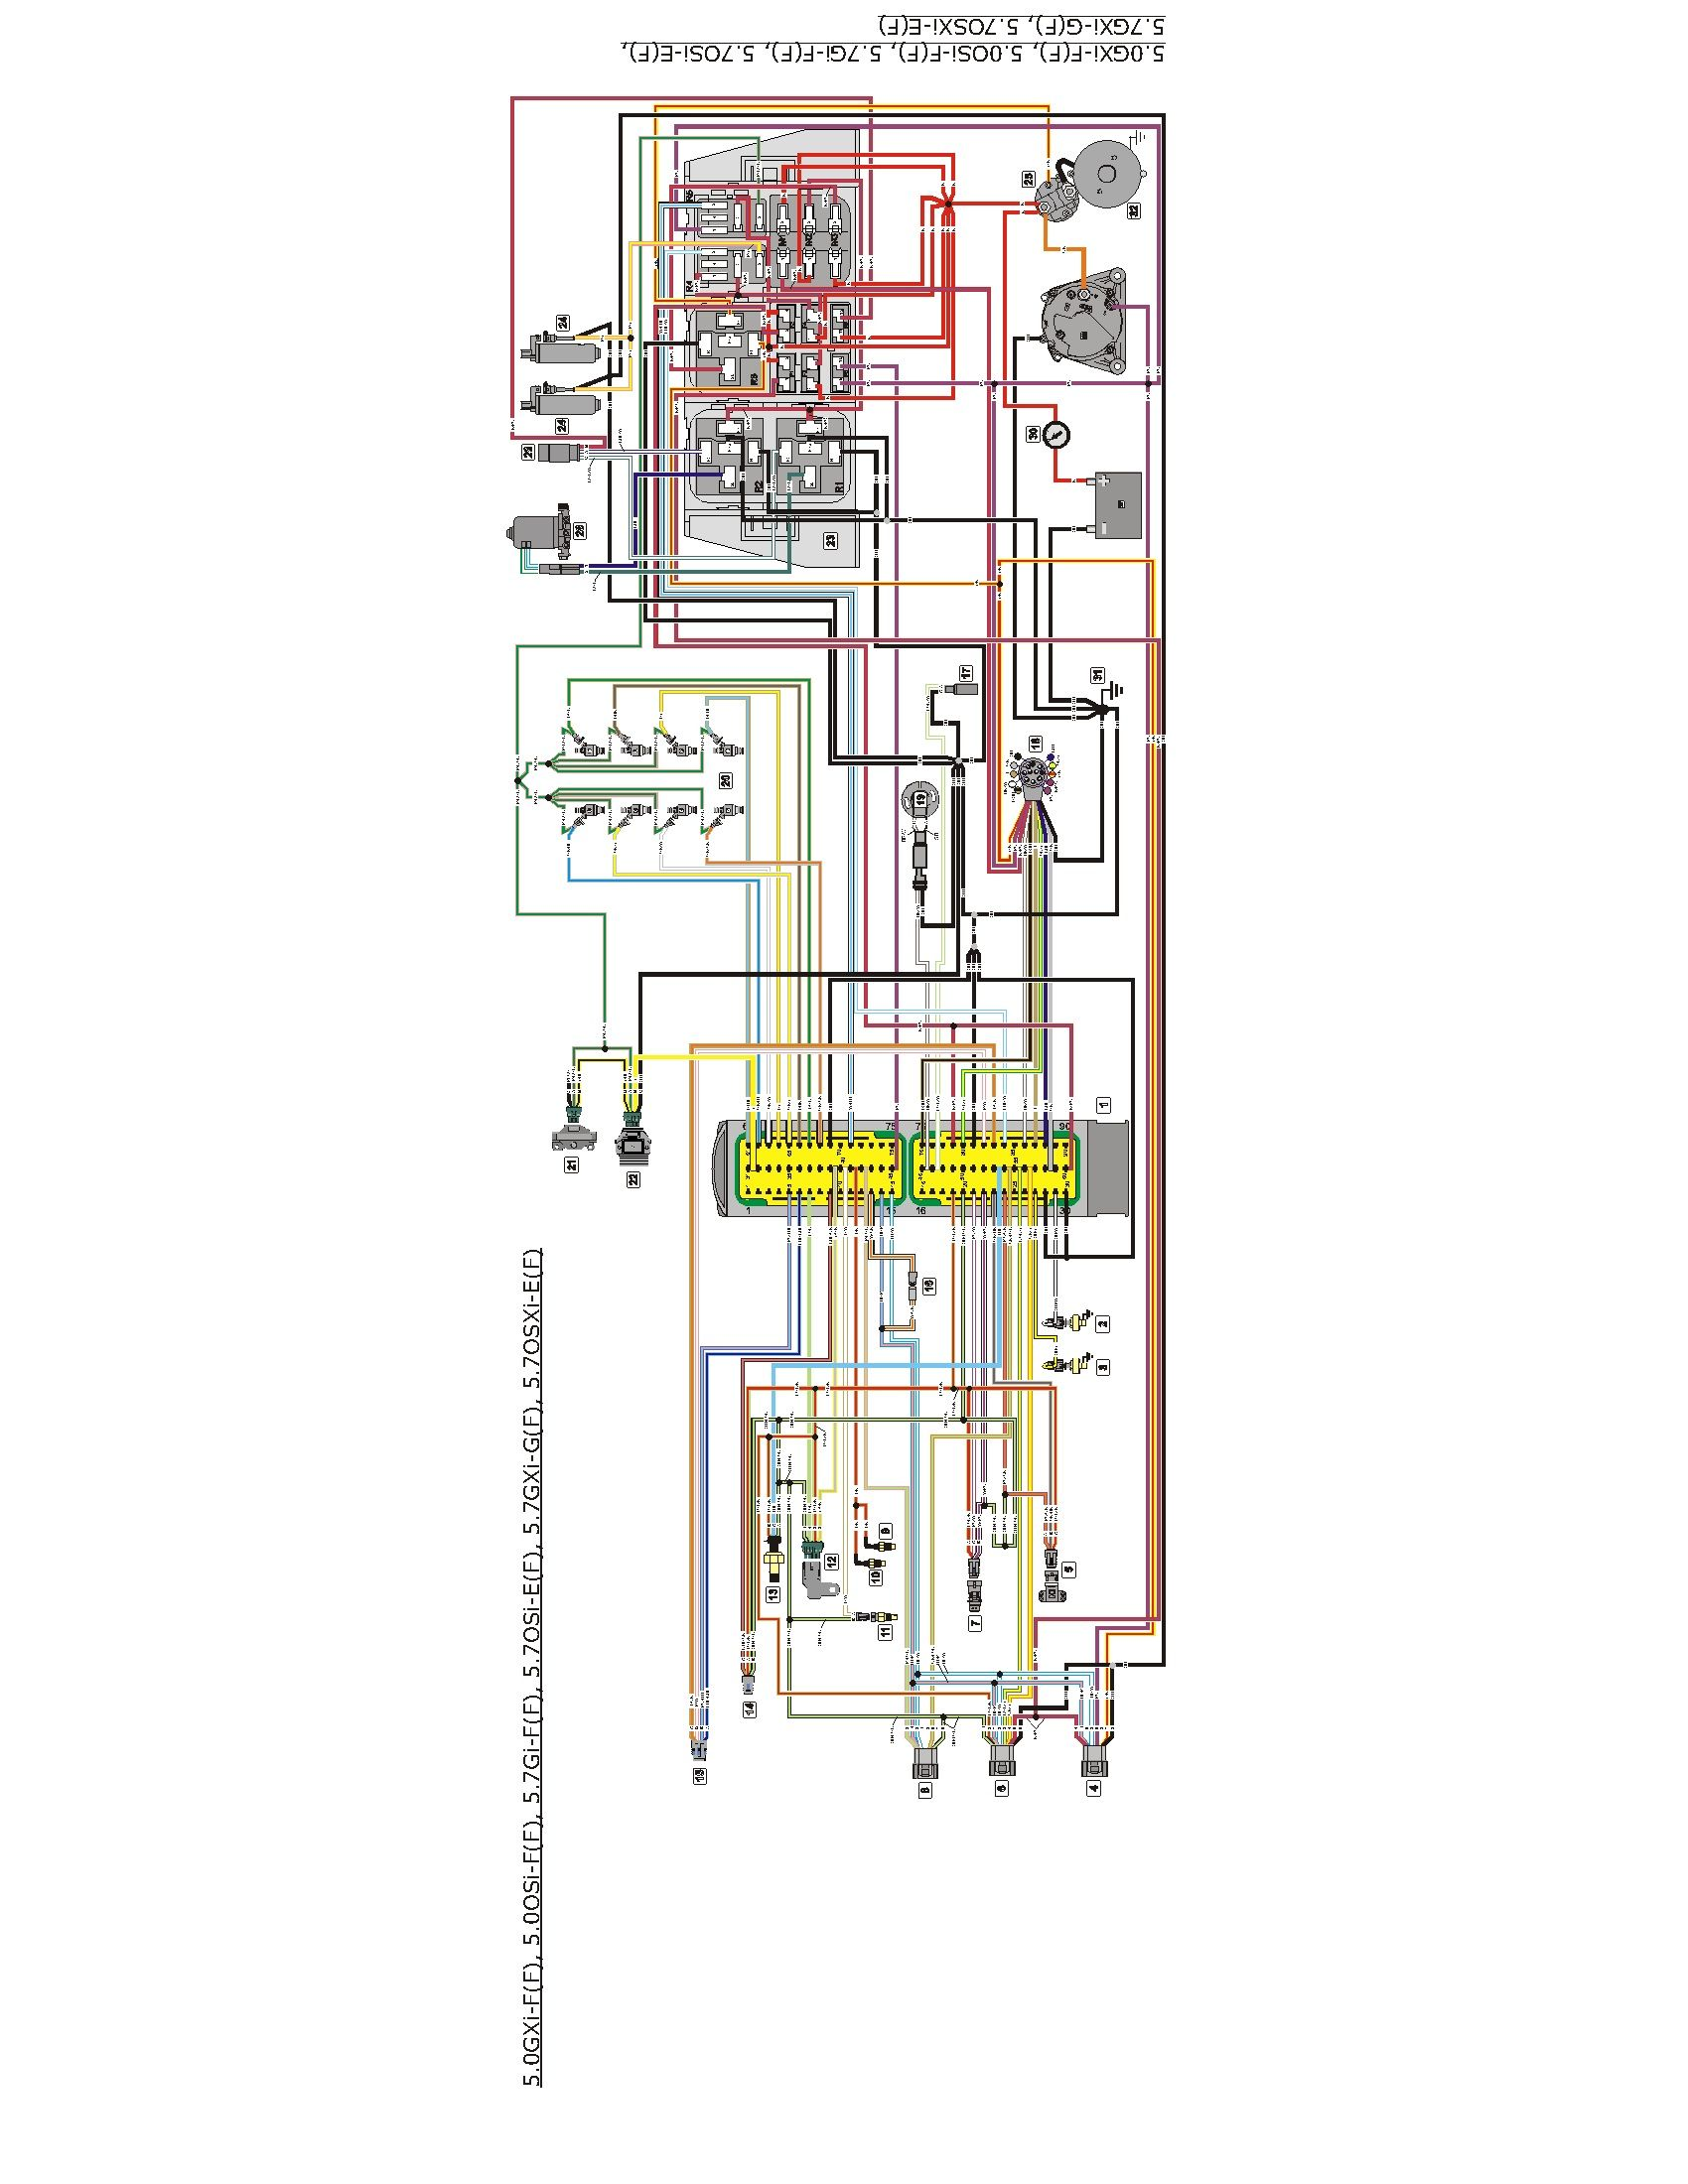 38e0106861e0fe47e508530985b32839 volvo penta wiring diagrams detailed schematics diagram